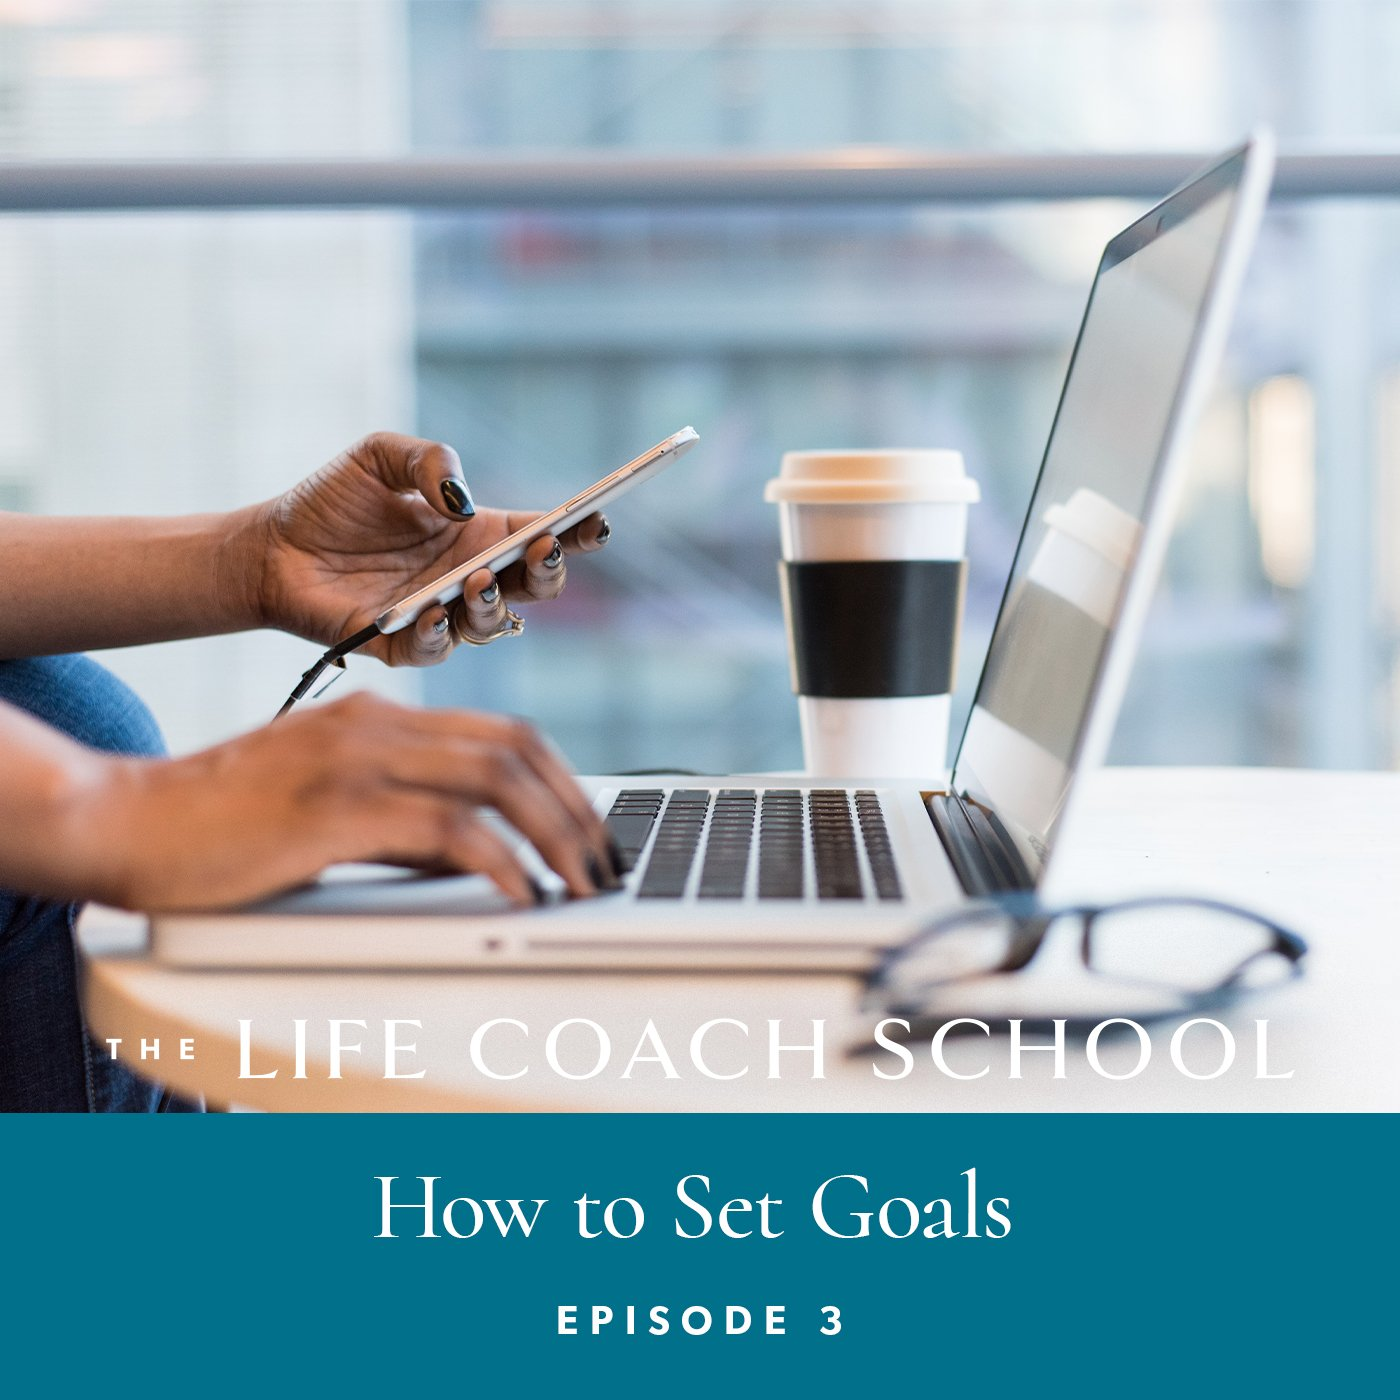 The Life Coach School Podcast with Brooke Castillo | Episode 3 | How to Set Goals